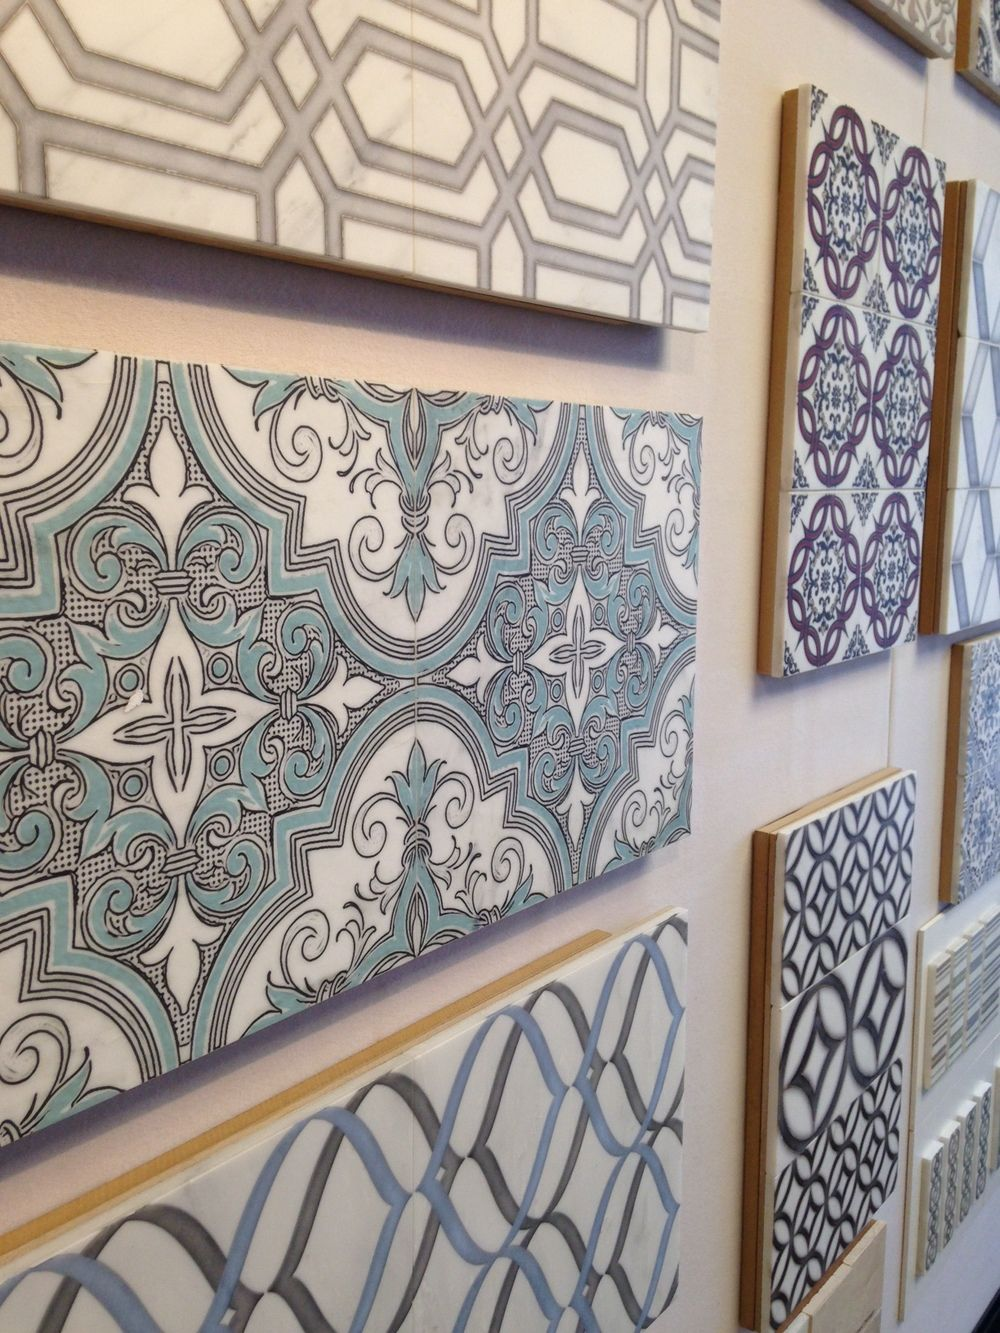 Come Check Out Our New Line Of Hand Printed Tile On Natural Stone Available In